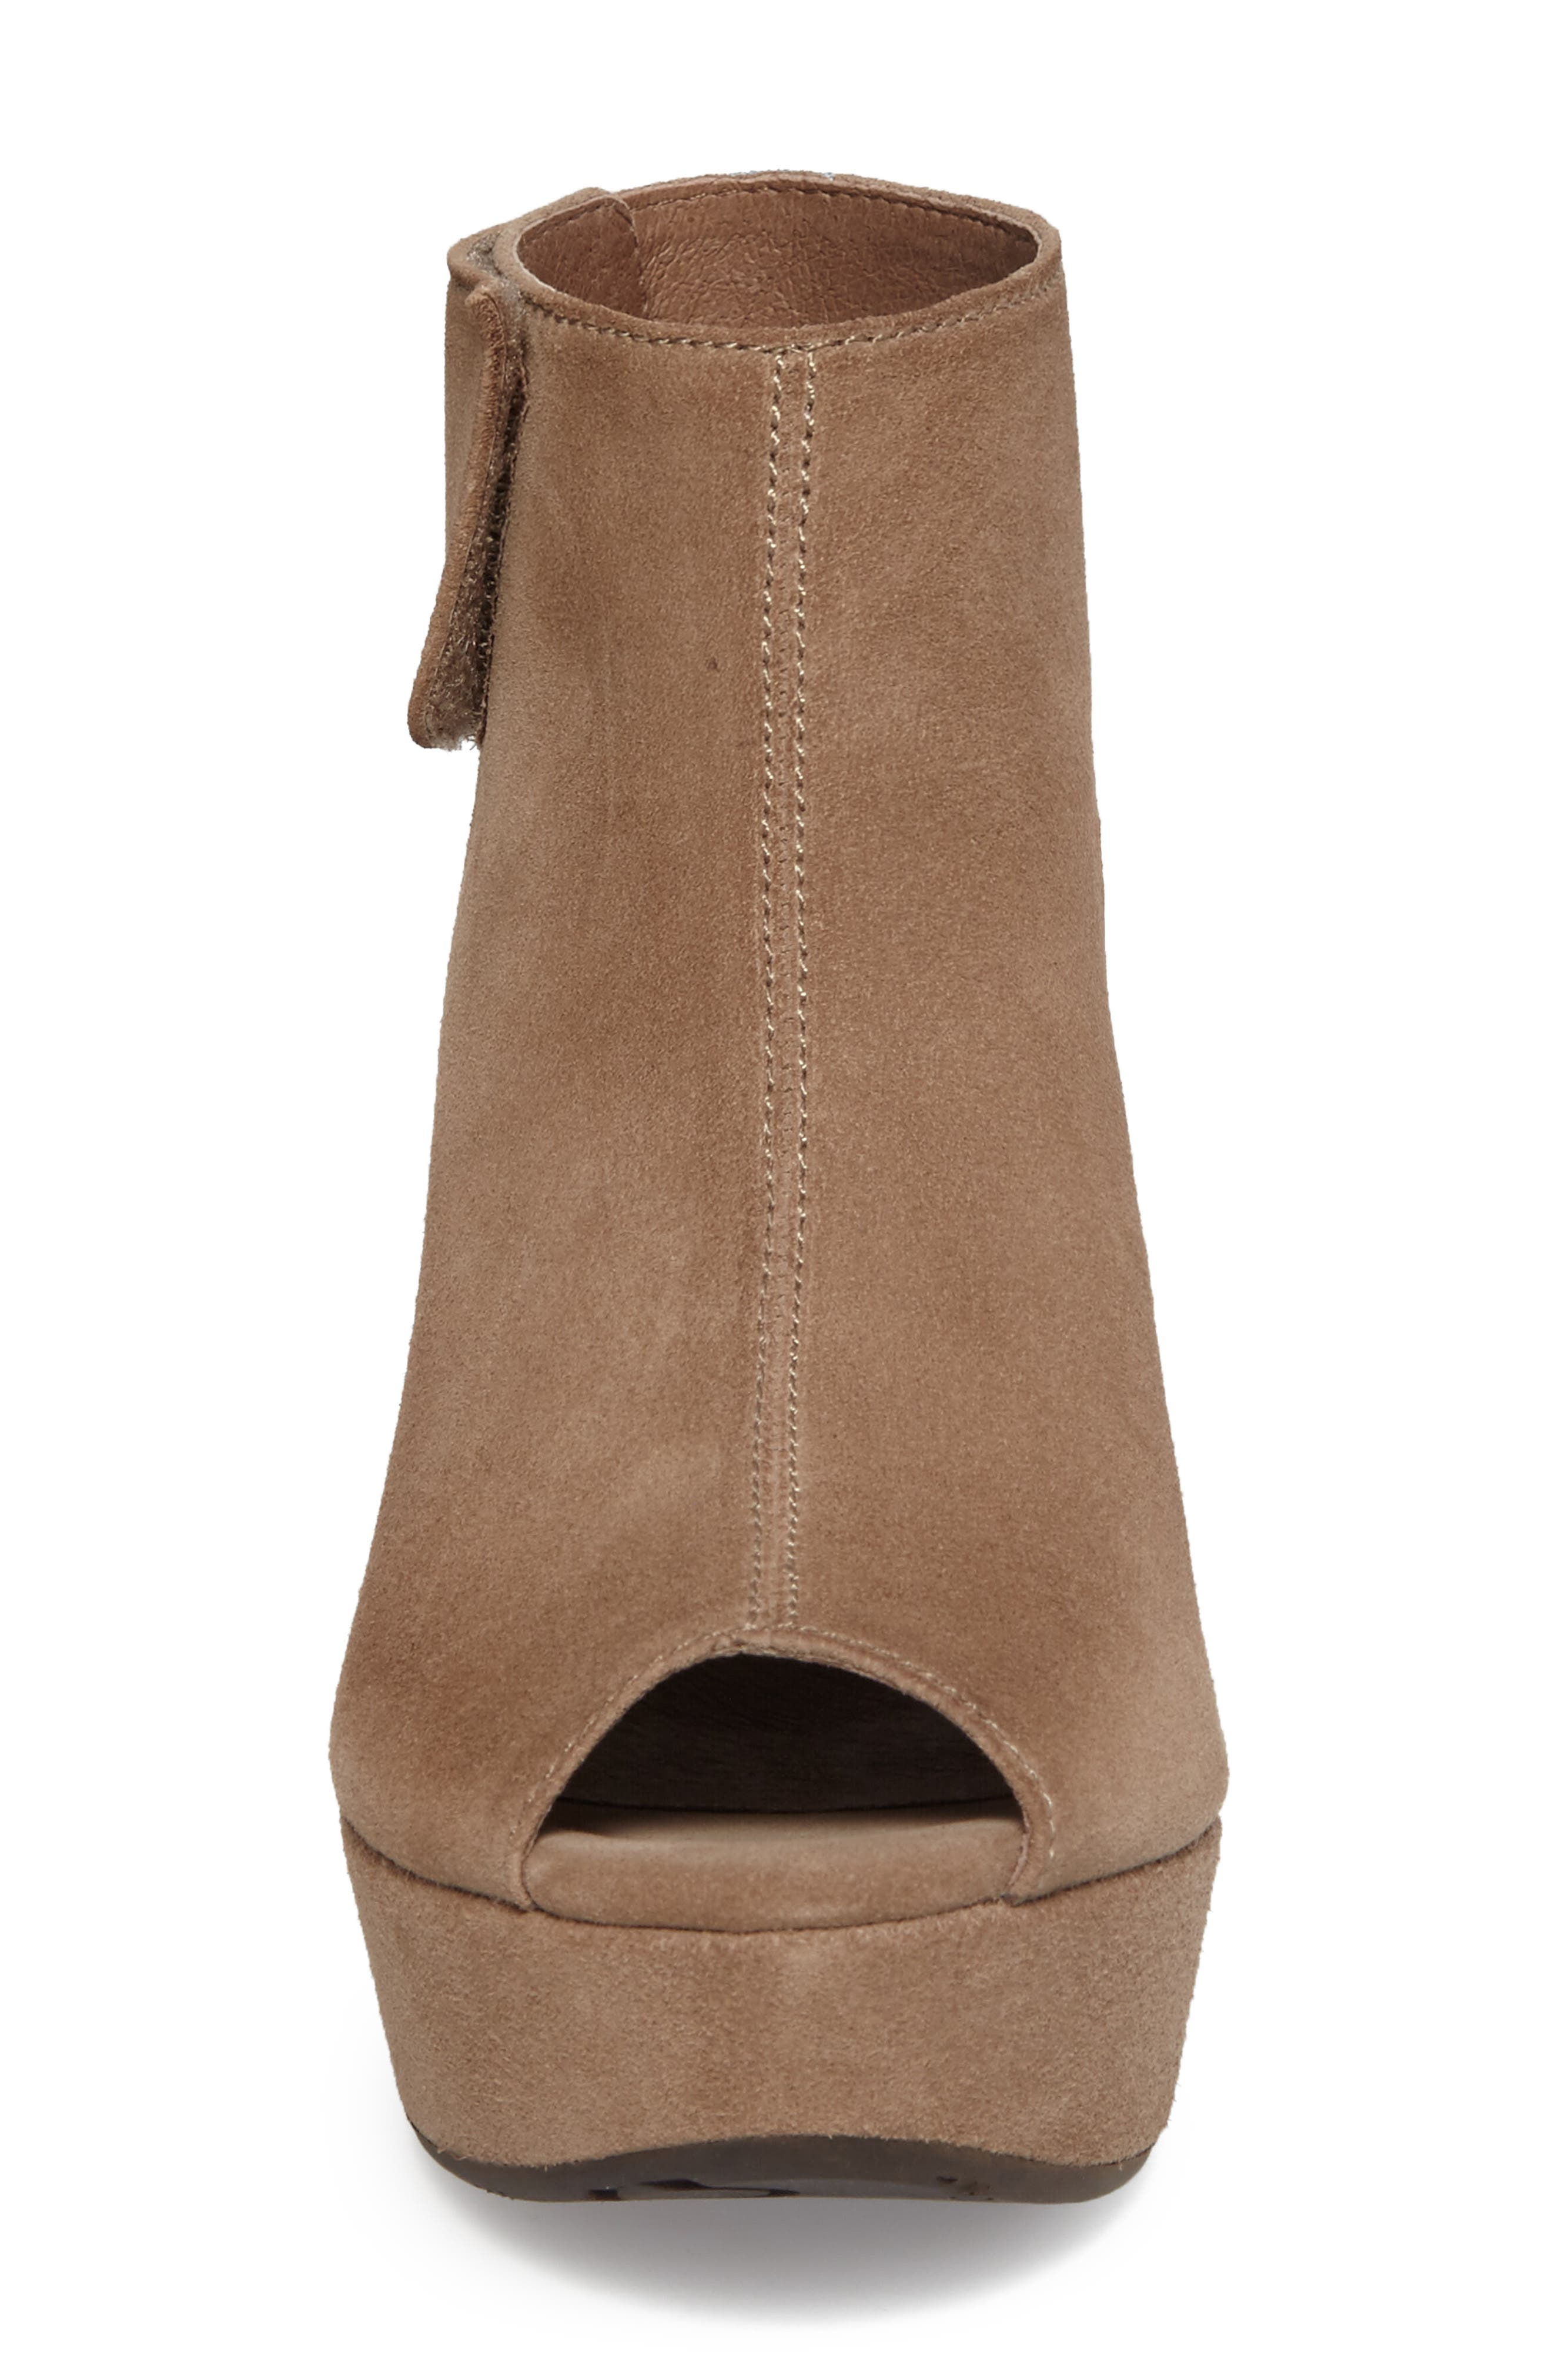 Cutout Wedge Sandal,                             Alternate thumbnail 4, color,                             Taupe Suede